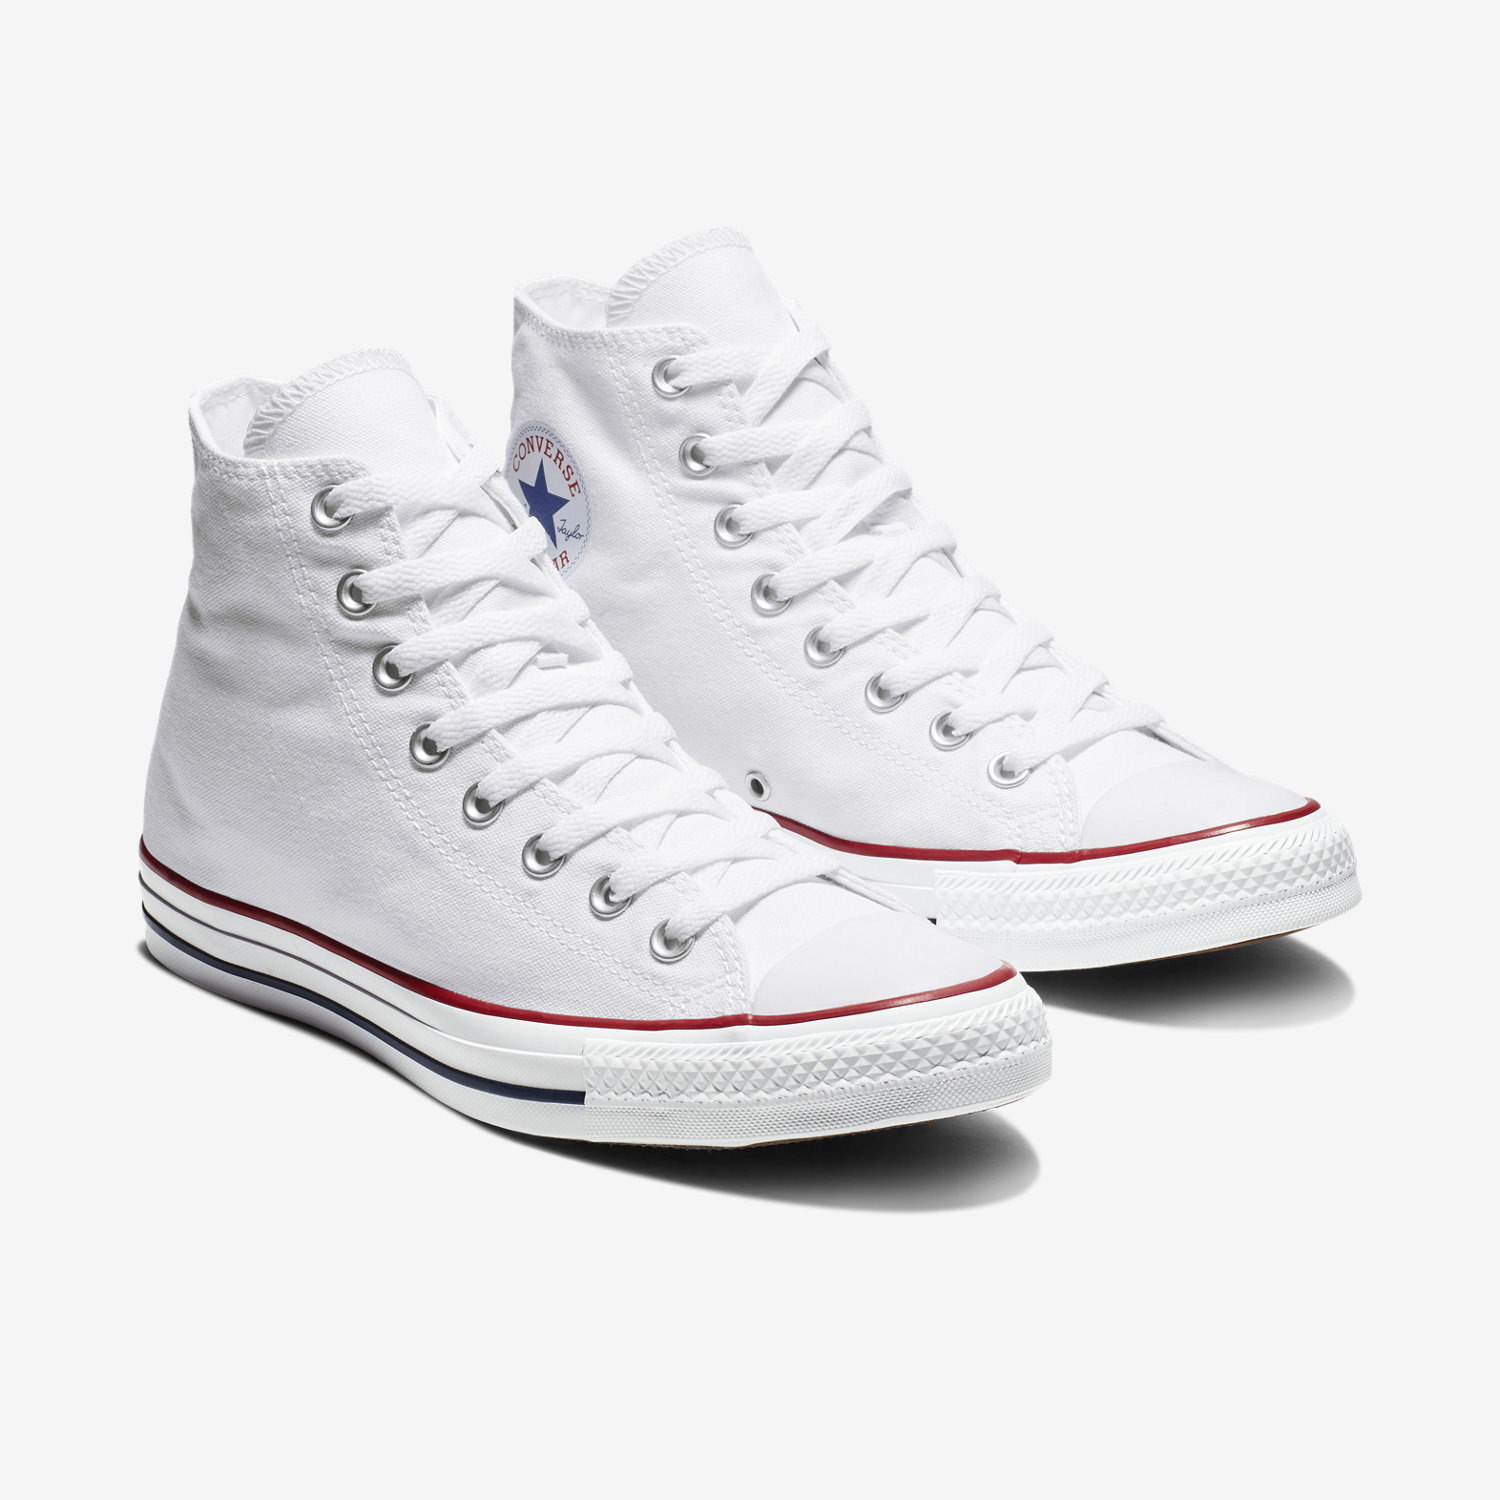 CHUCK TAYLOR ALL STAR - Sneaker high - blanc wqt1kNB